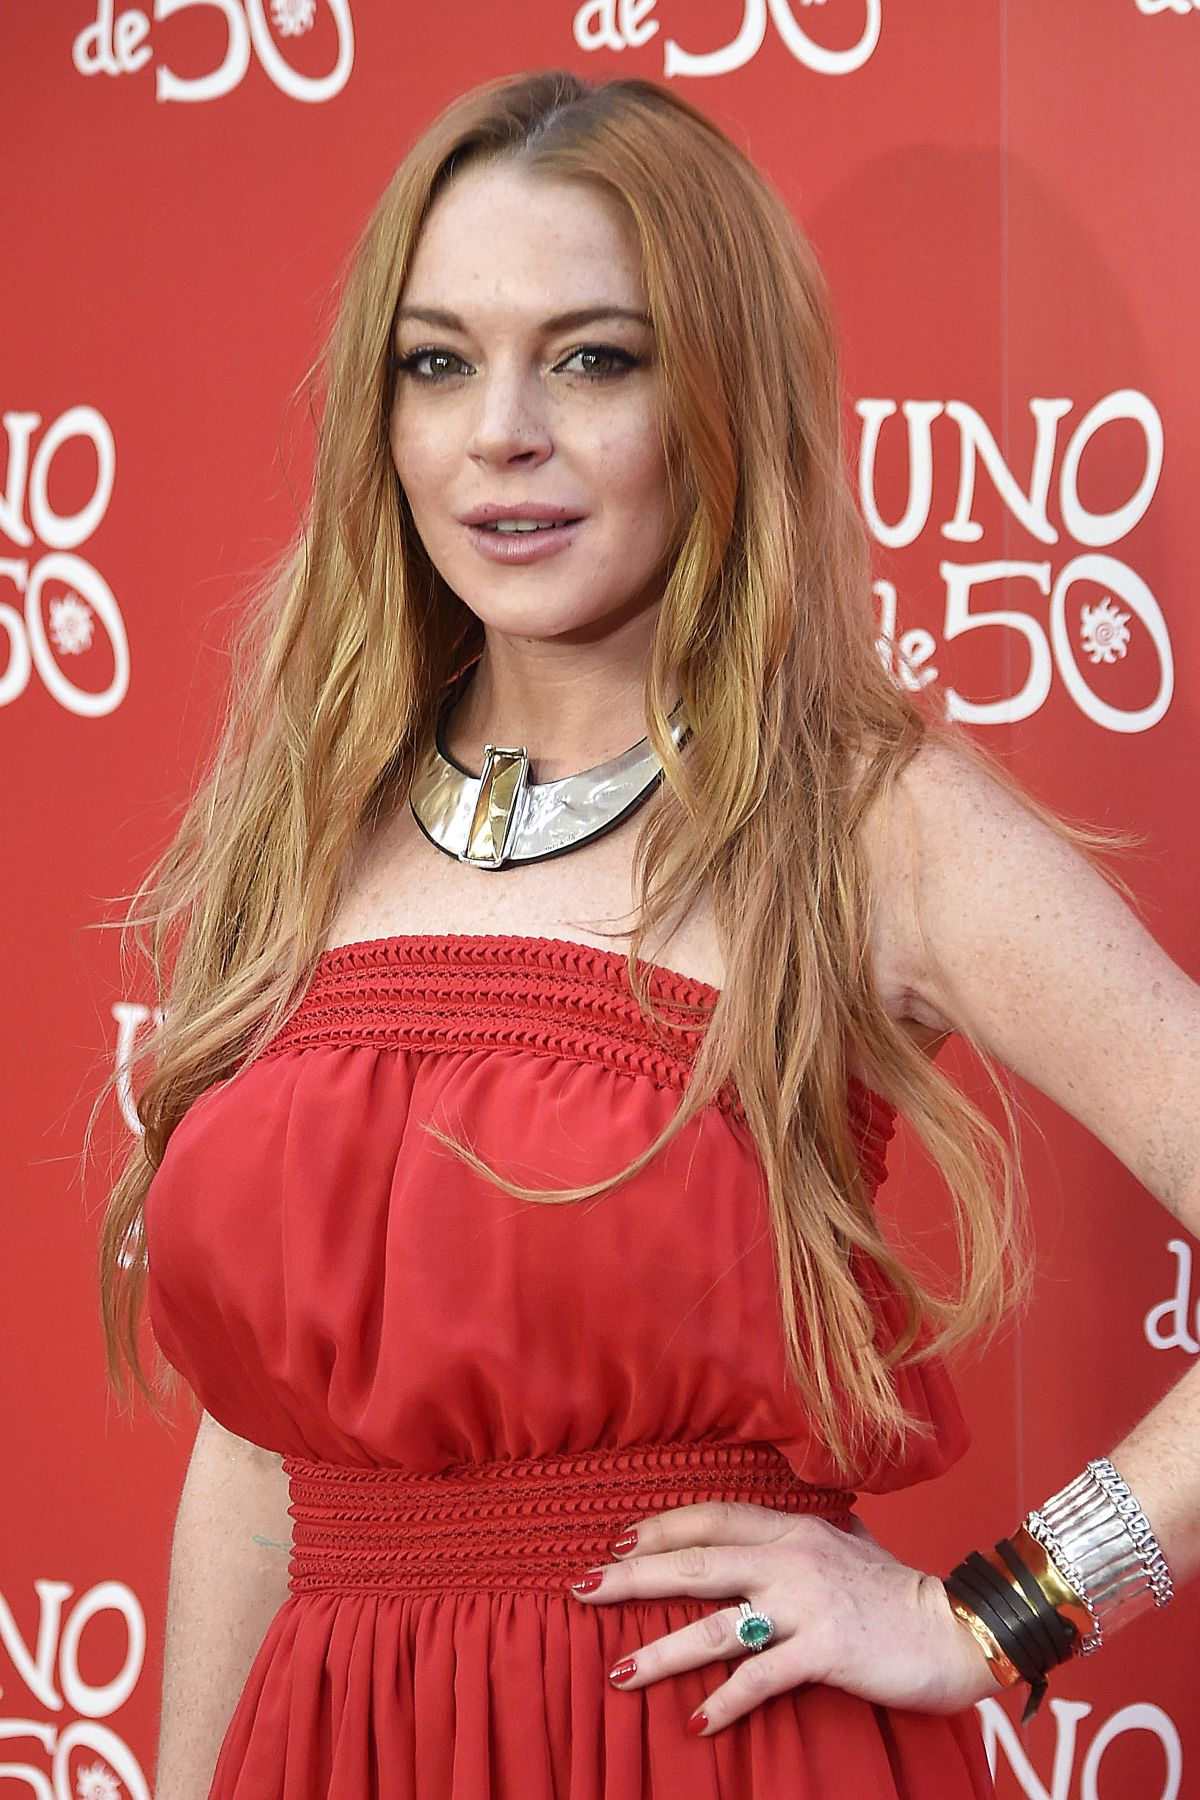 lindsay lohan - photo #34